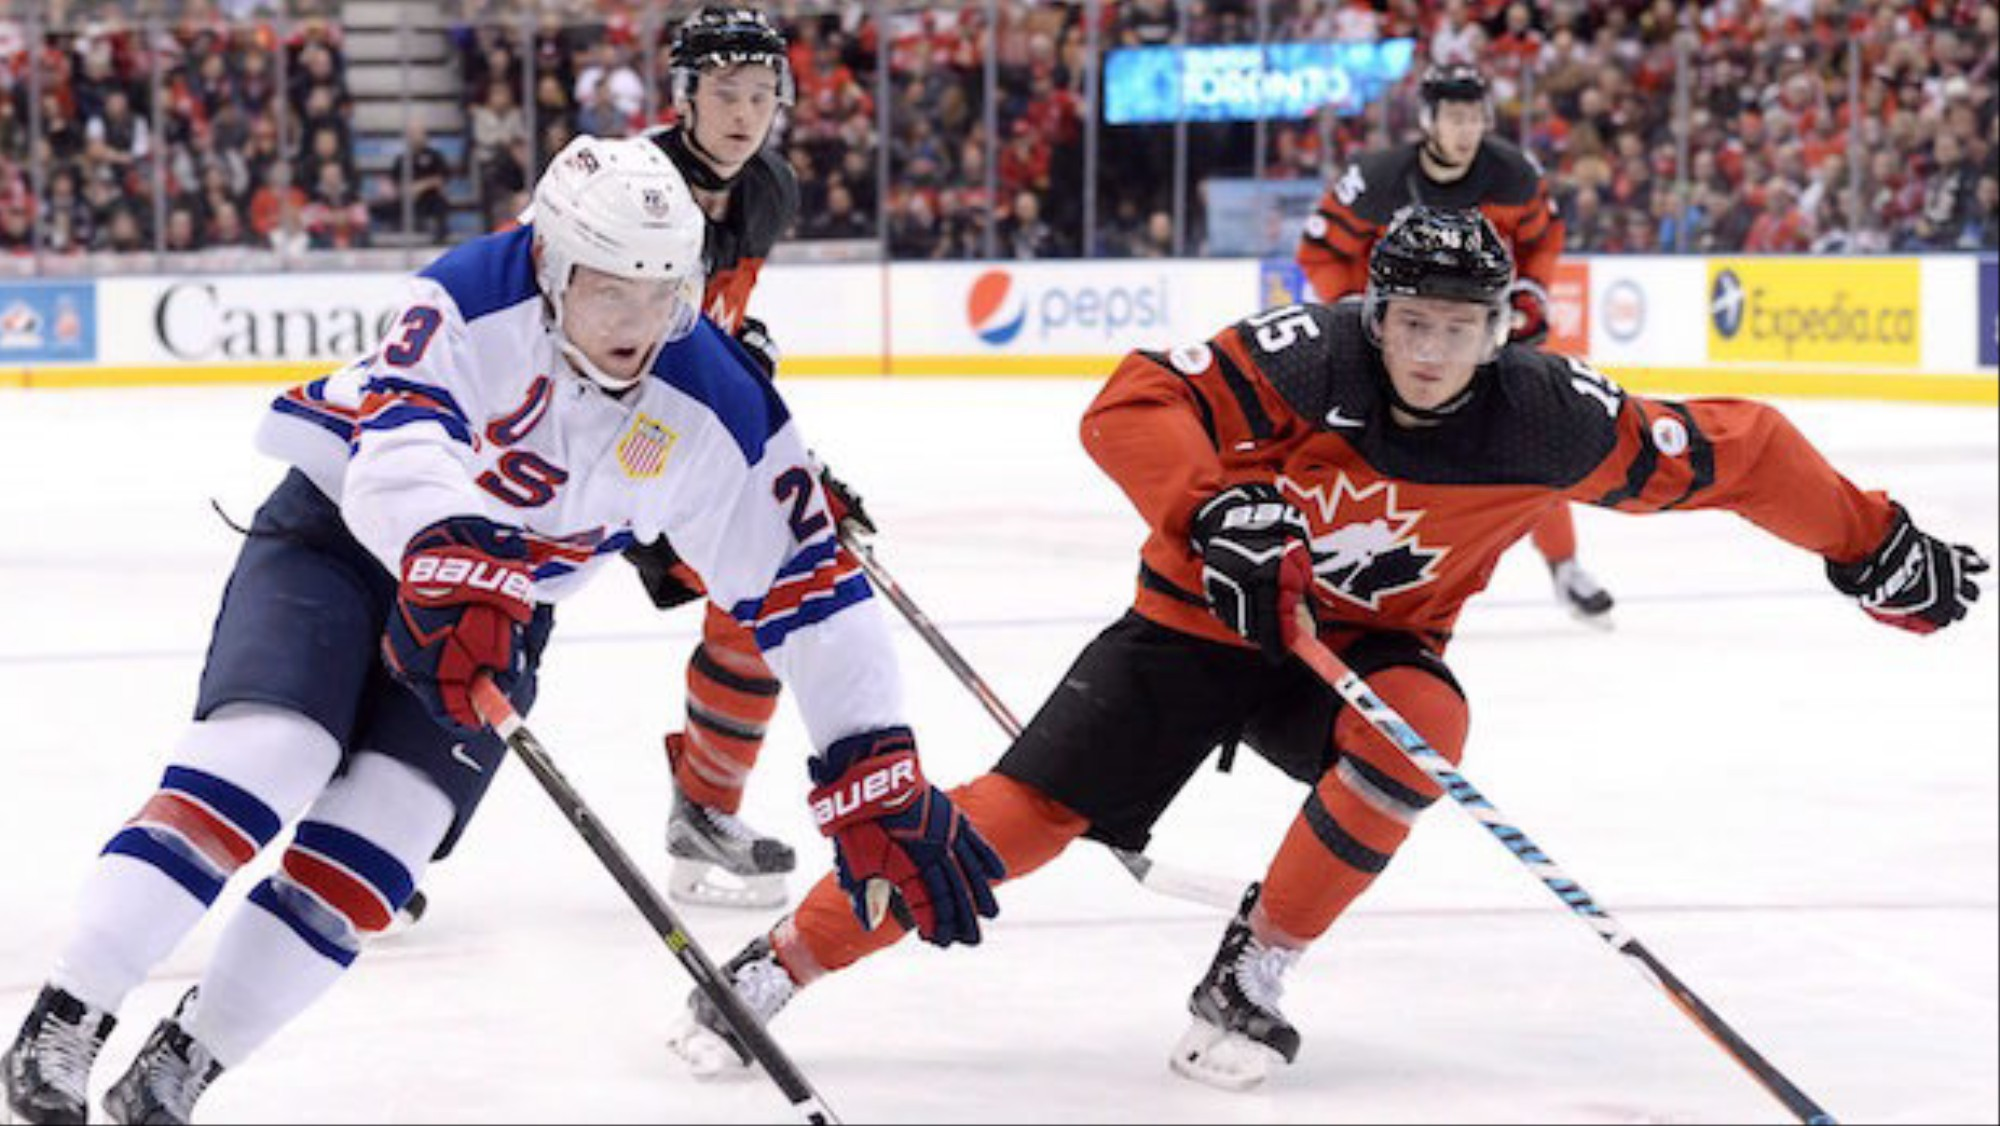 Canada Usa World Junior Final Is The Matchup We All Wanted Vice